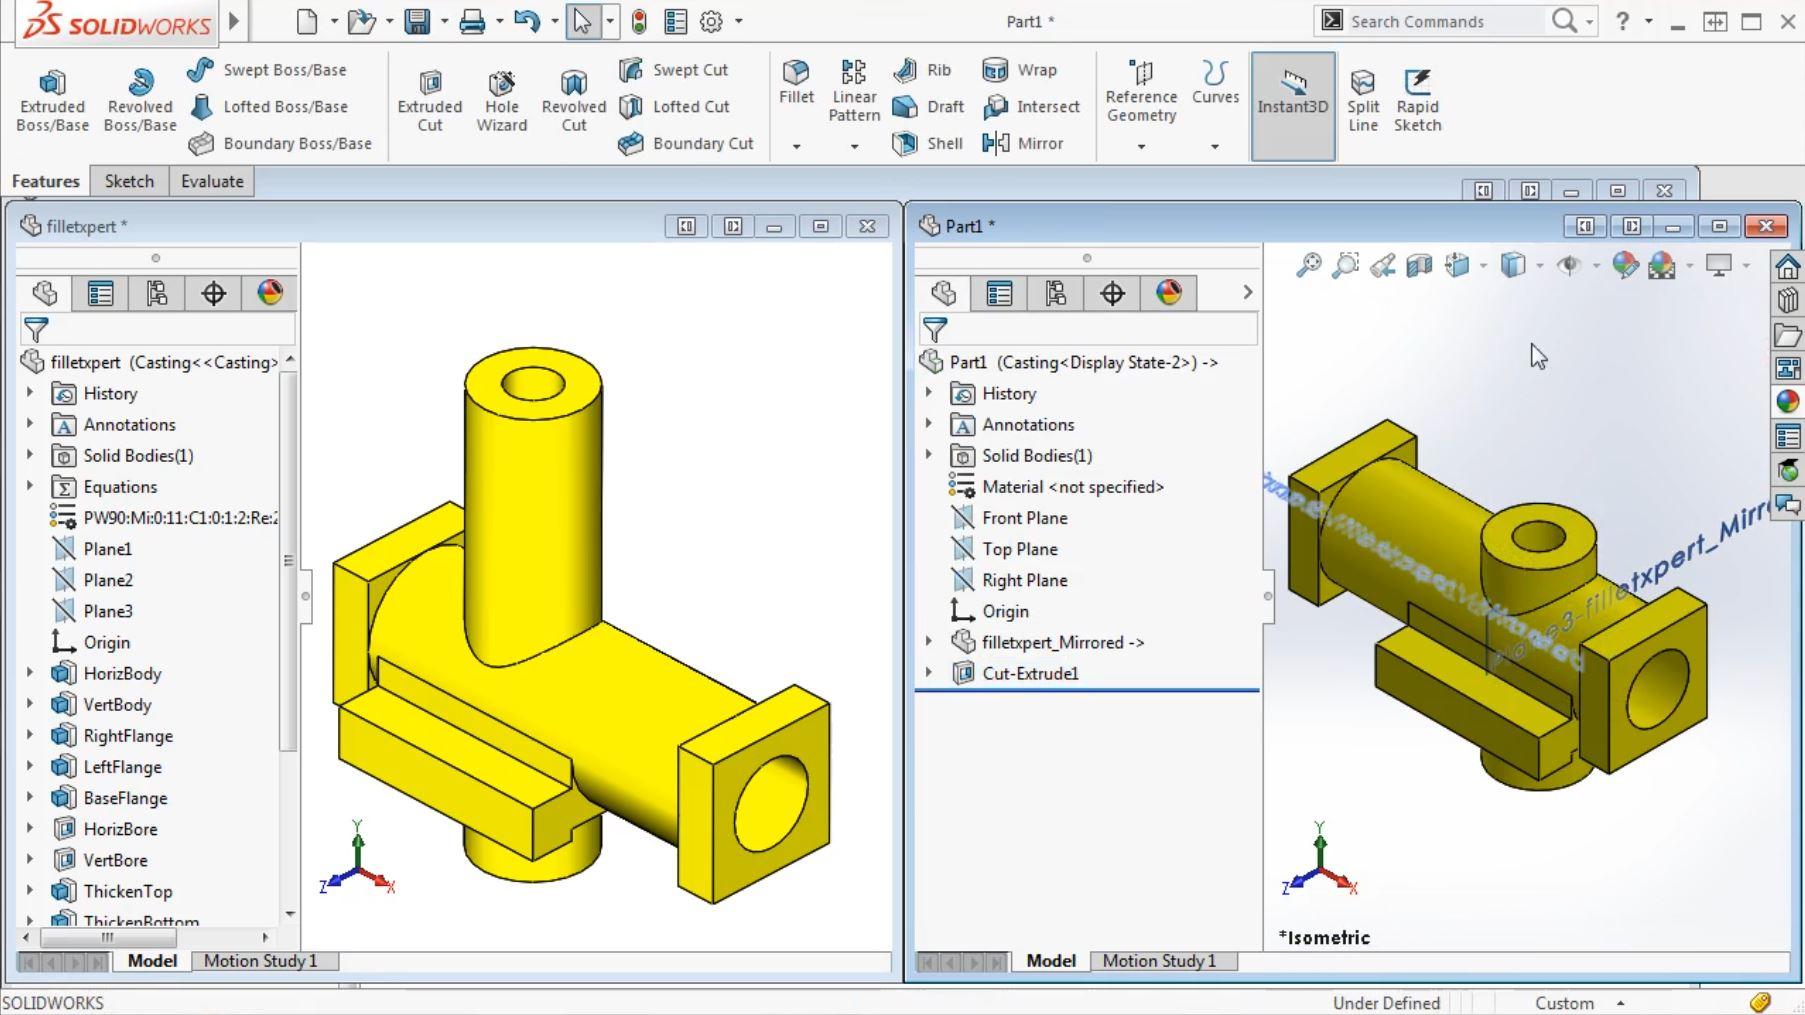 How to Mirror a Part and Discard the Original in SOLIDWORKS